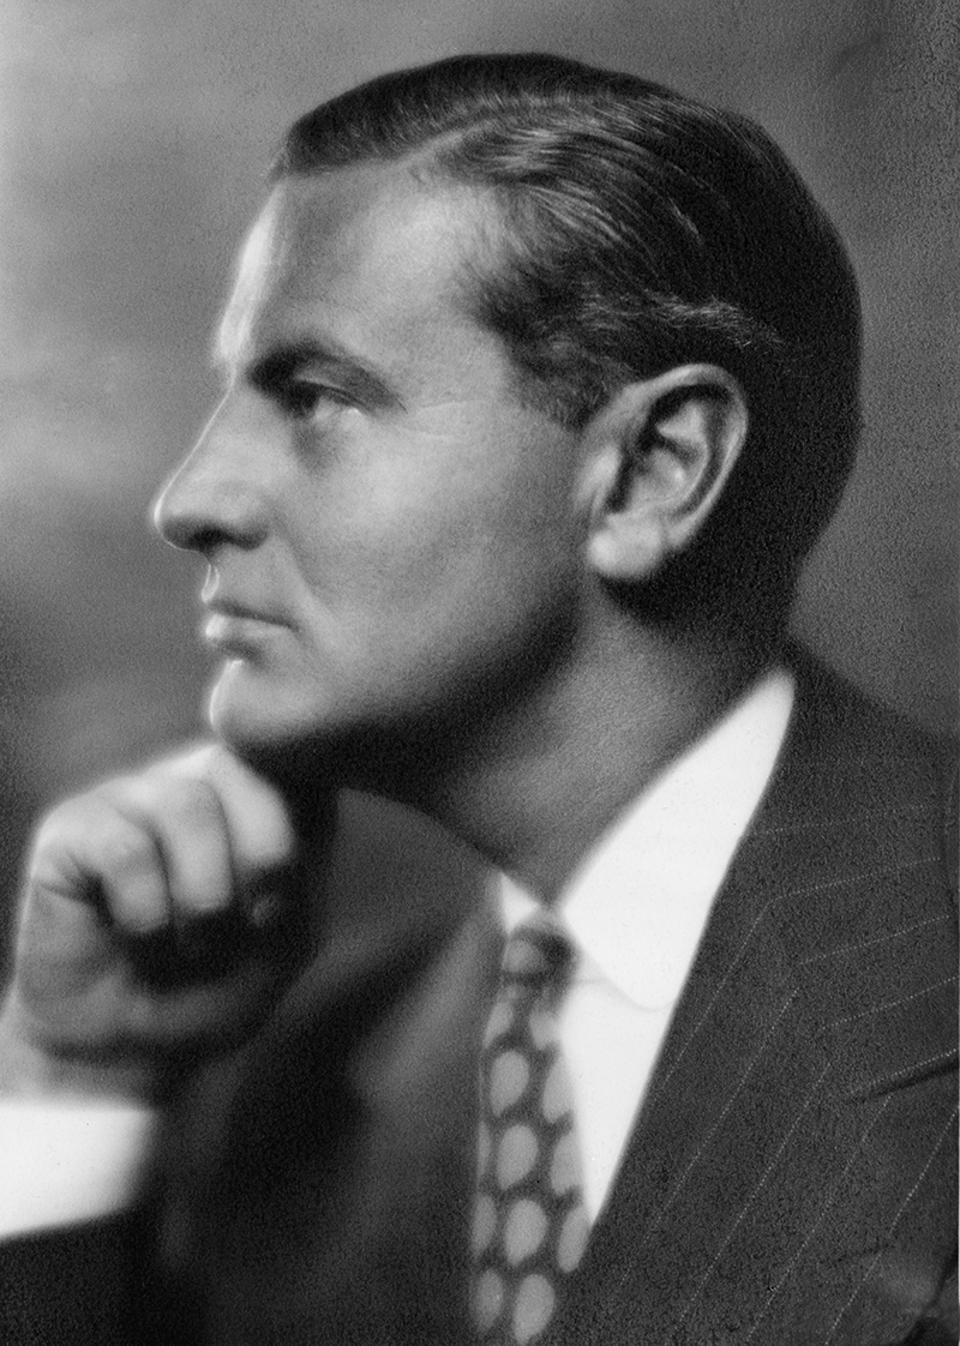 Walter-Hoving-Lord and taylor